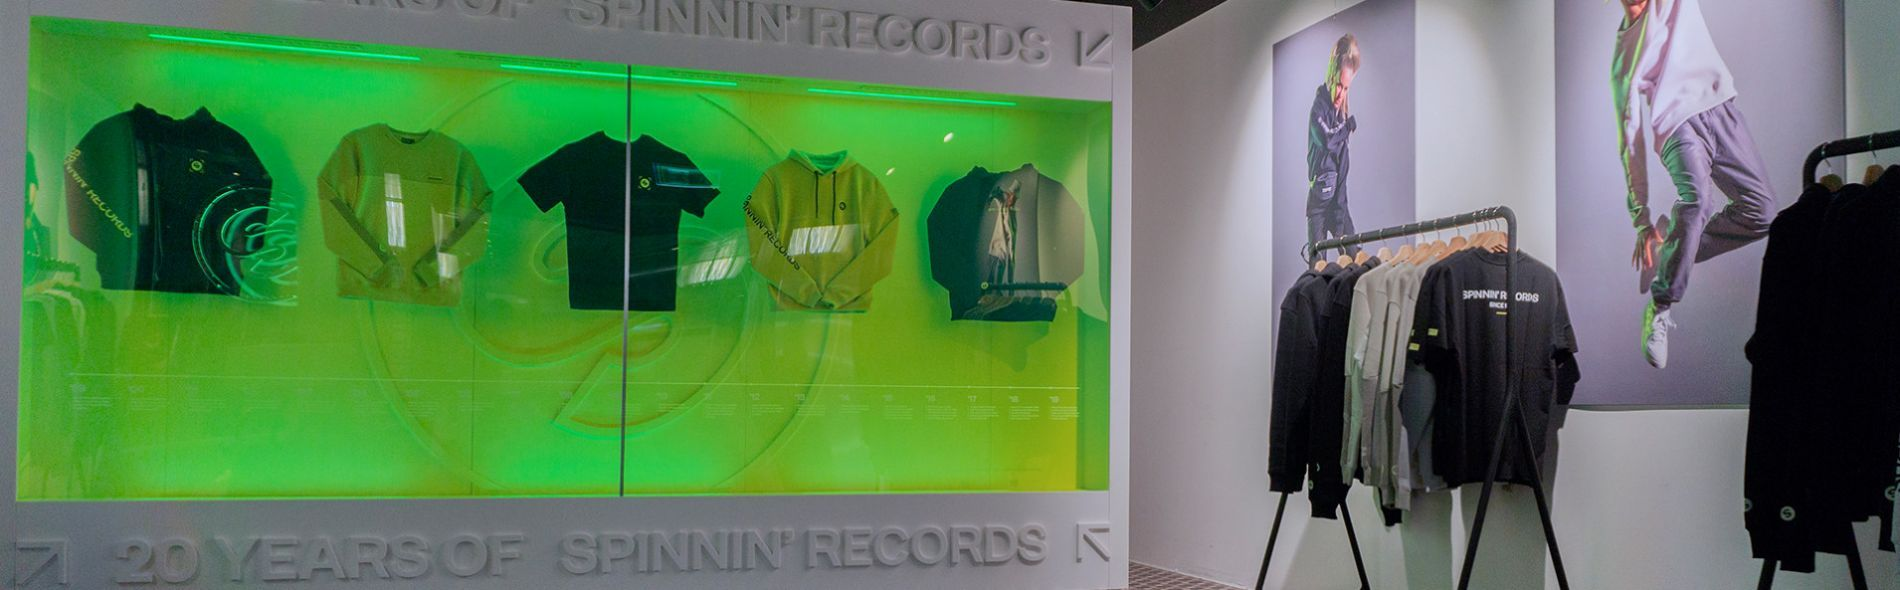 Spinnin' Records ADE Pop-up store 2019